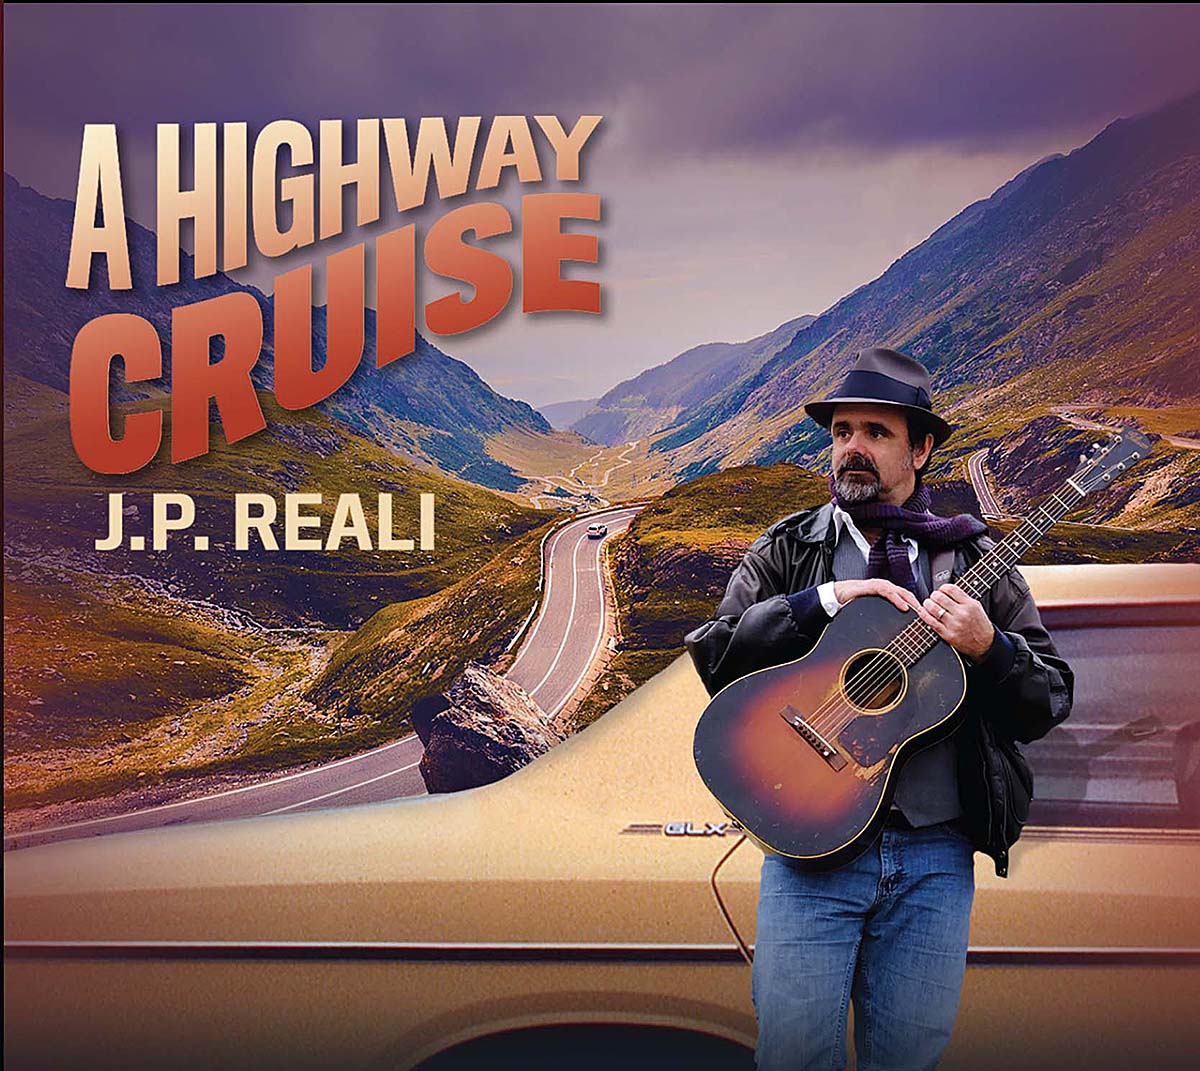 A Highway Cruise Cover